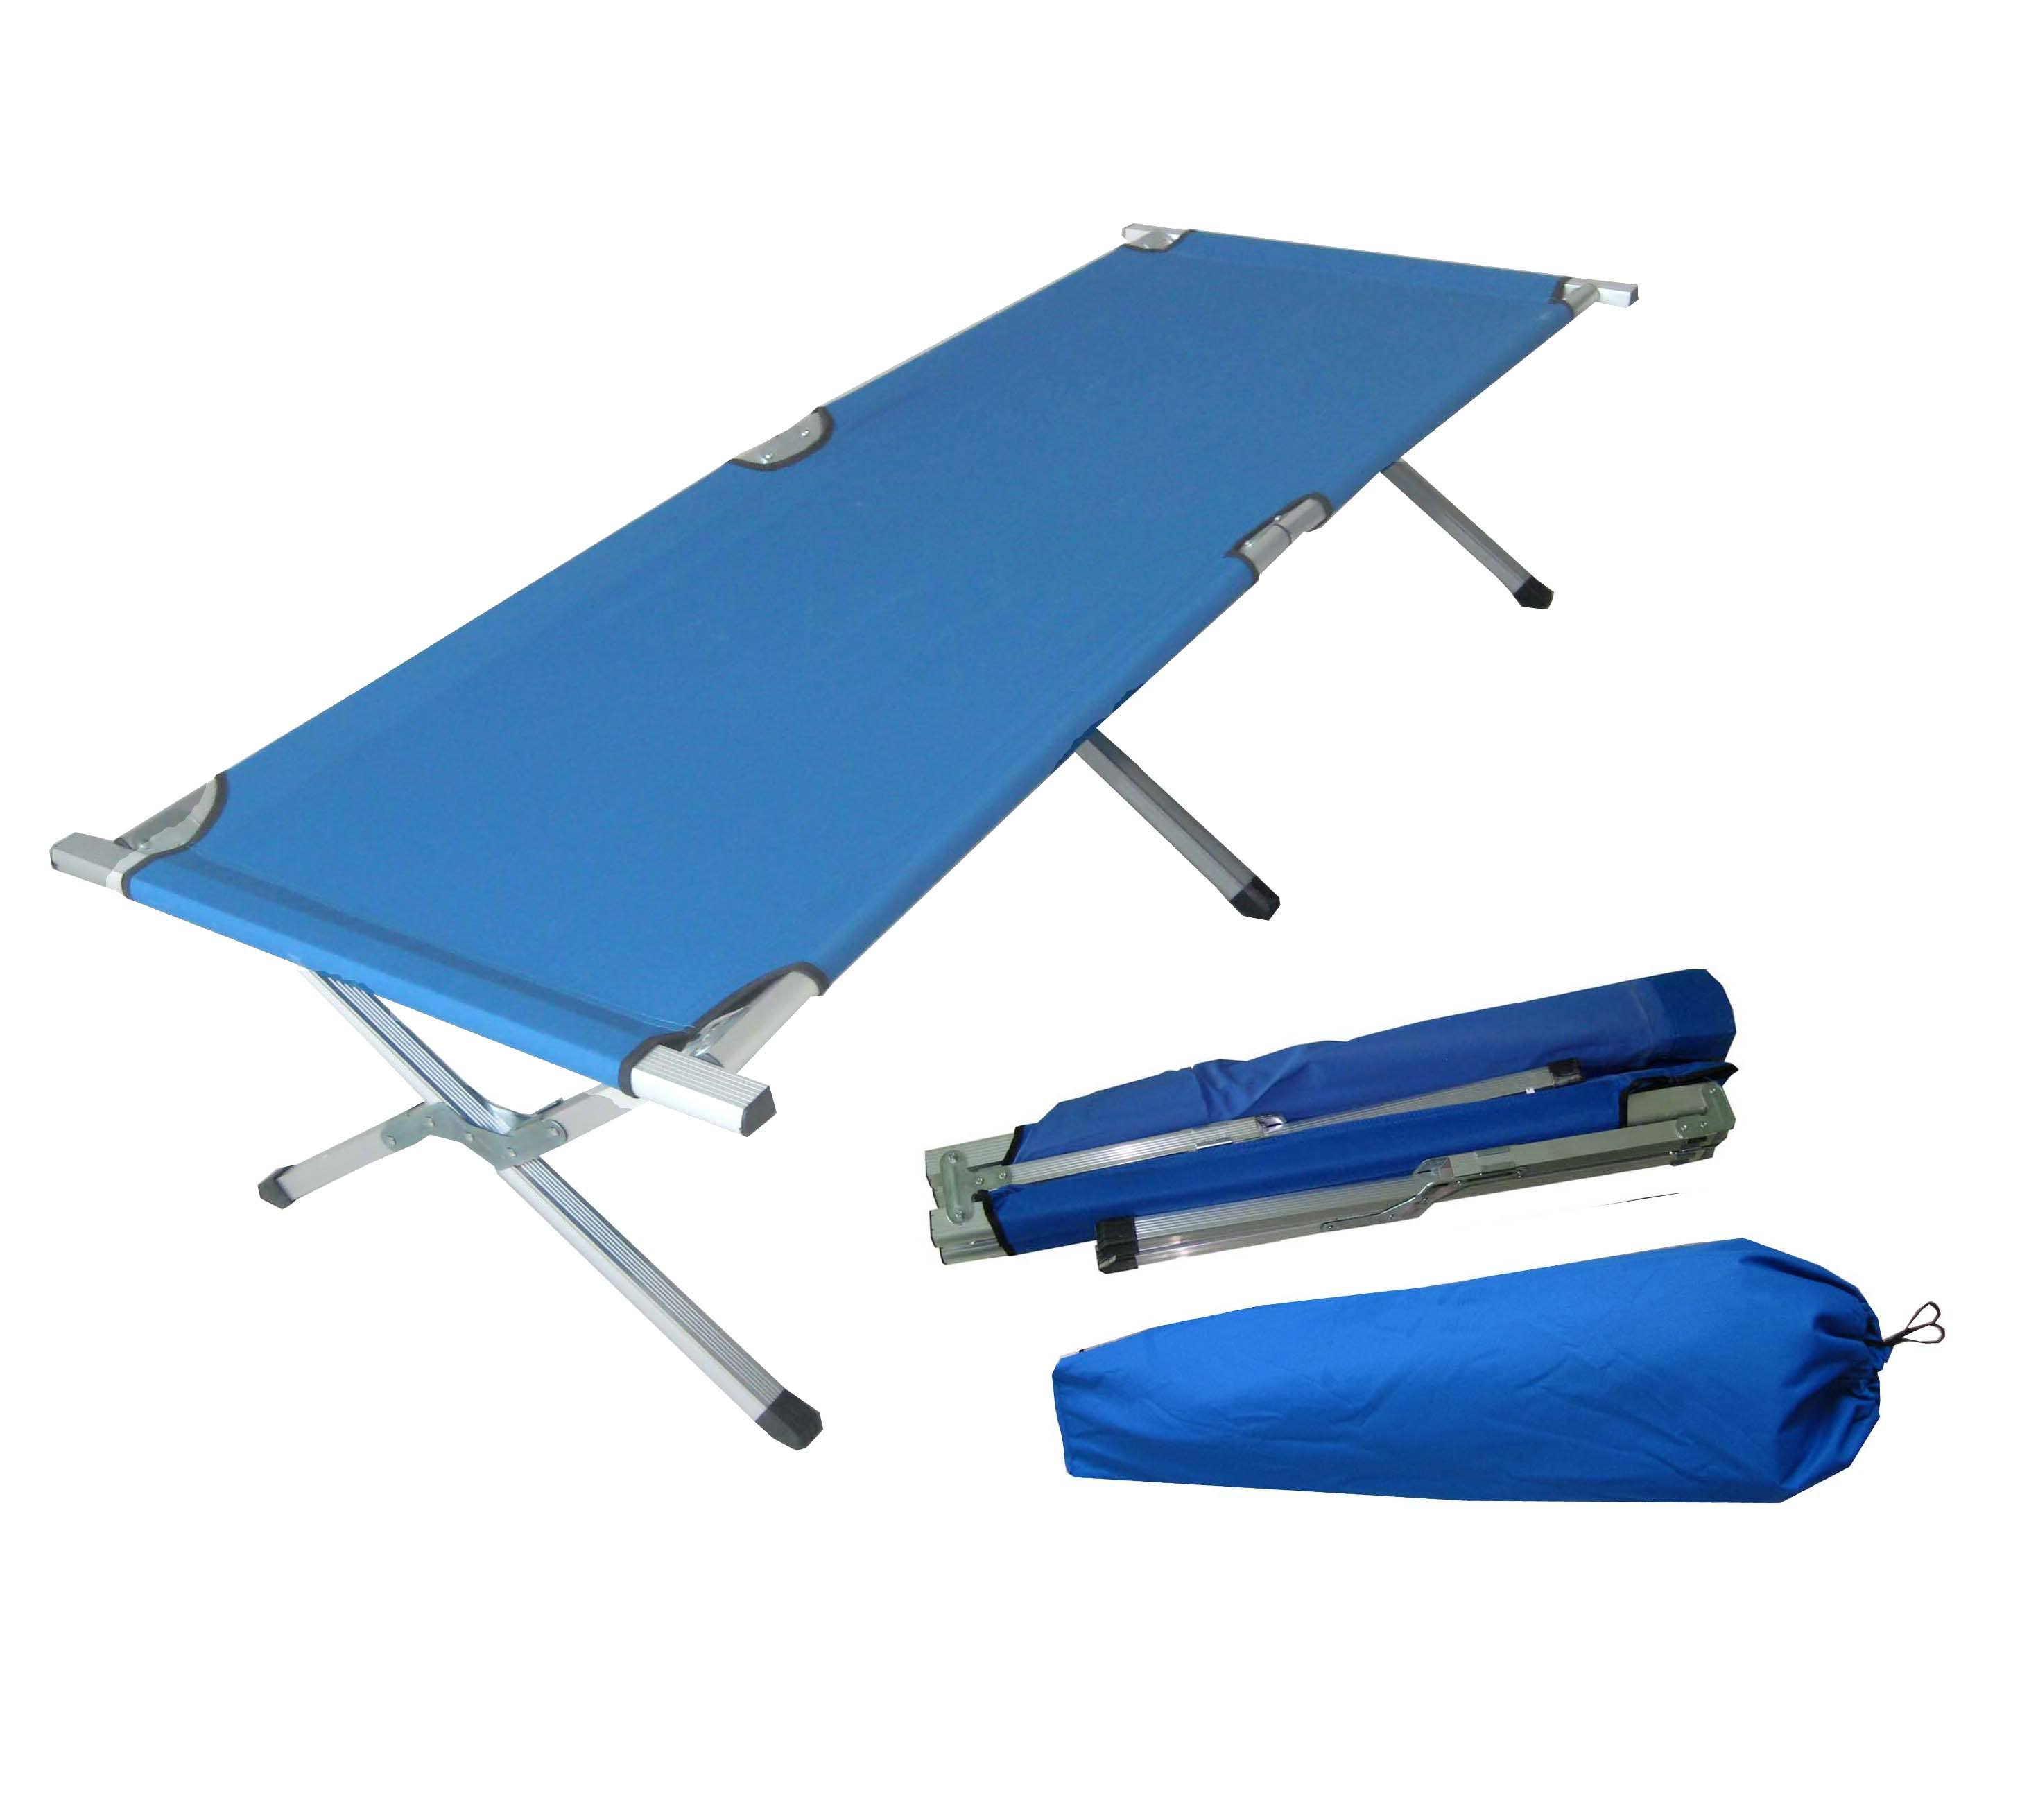 <span class=keywords><strong>Leichte</strong></span> campingbett mit tragetasche 600D polyester armee klappbett klapp grünen <span class=keywords><strong>kinderbett</strong></span> für outdoor camping